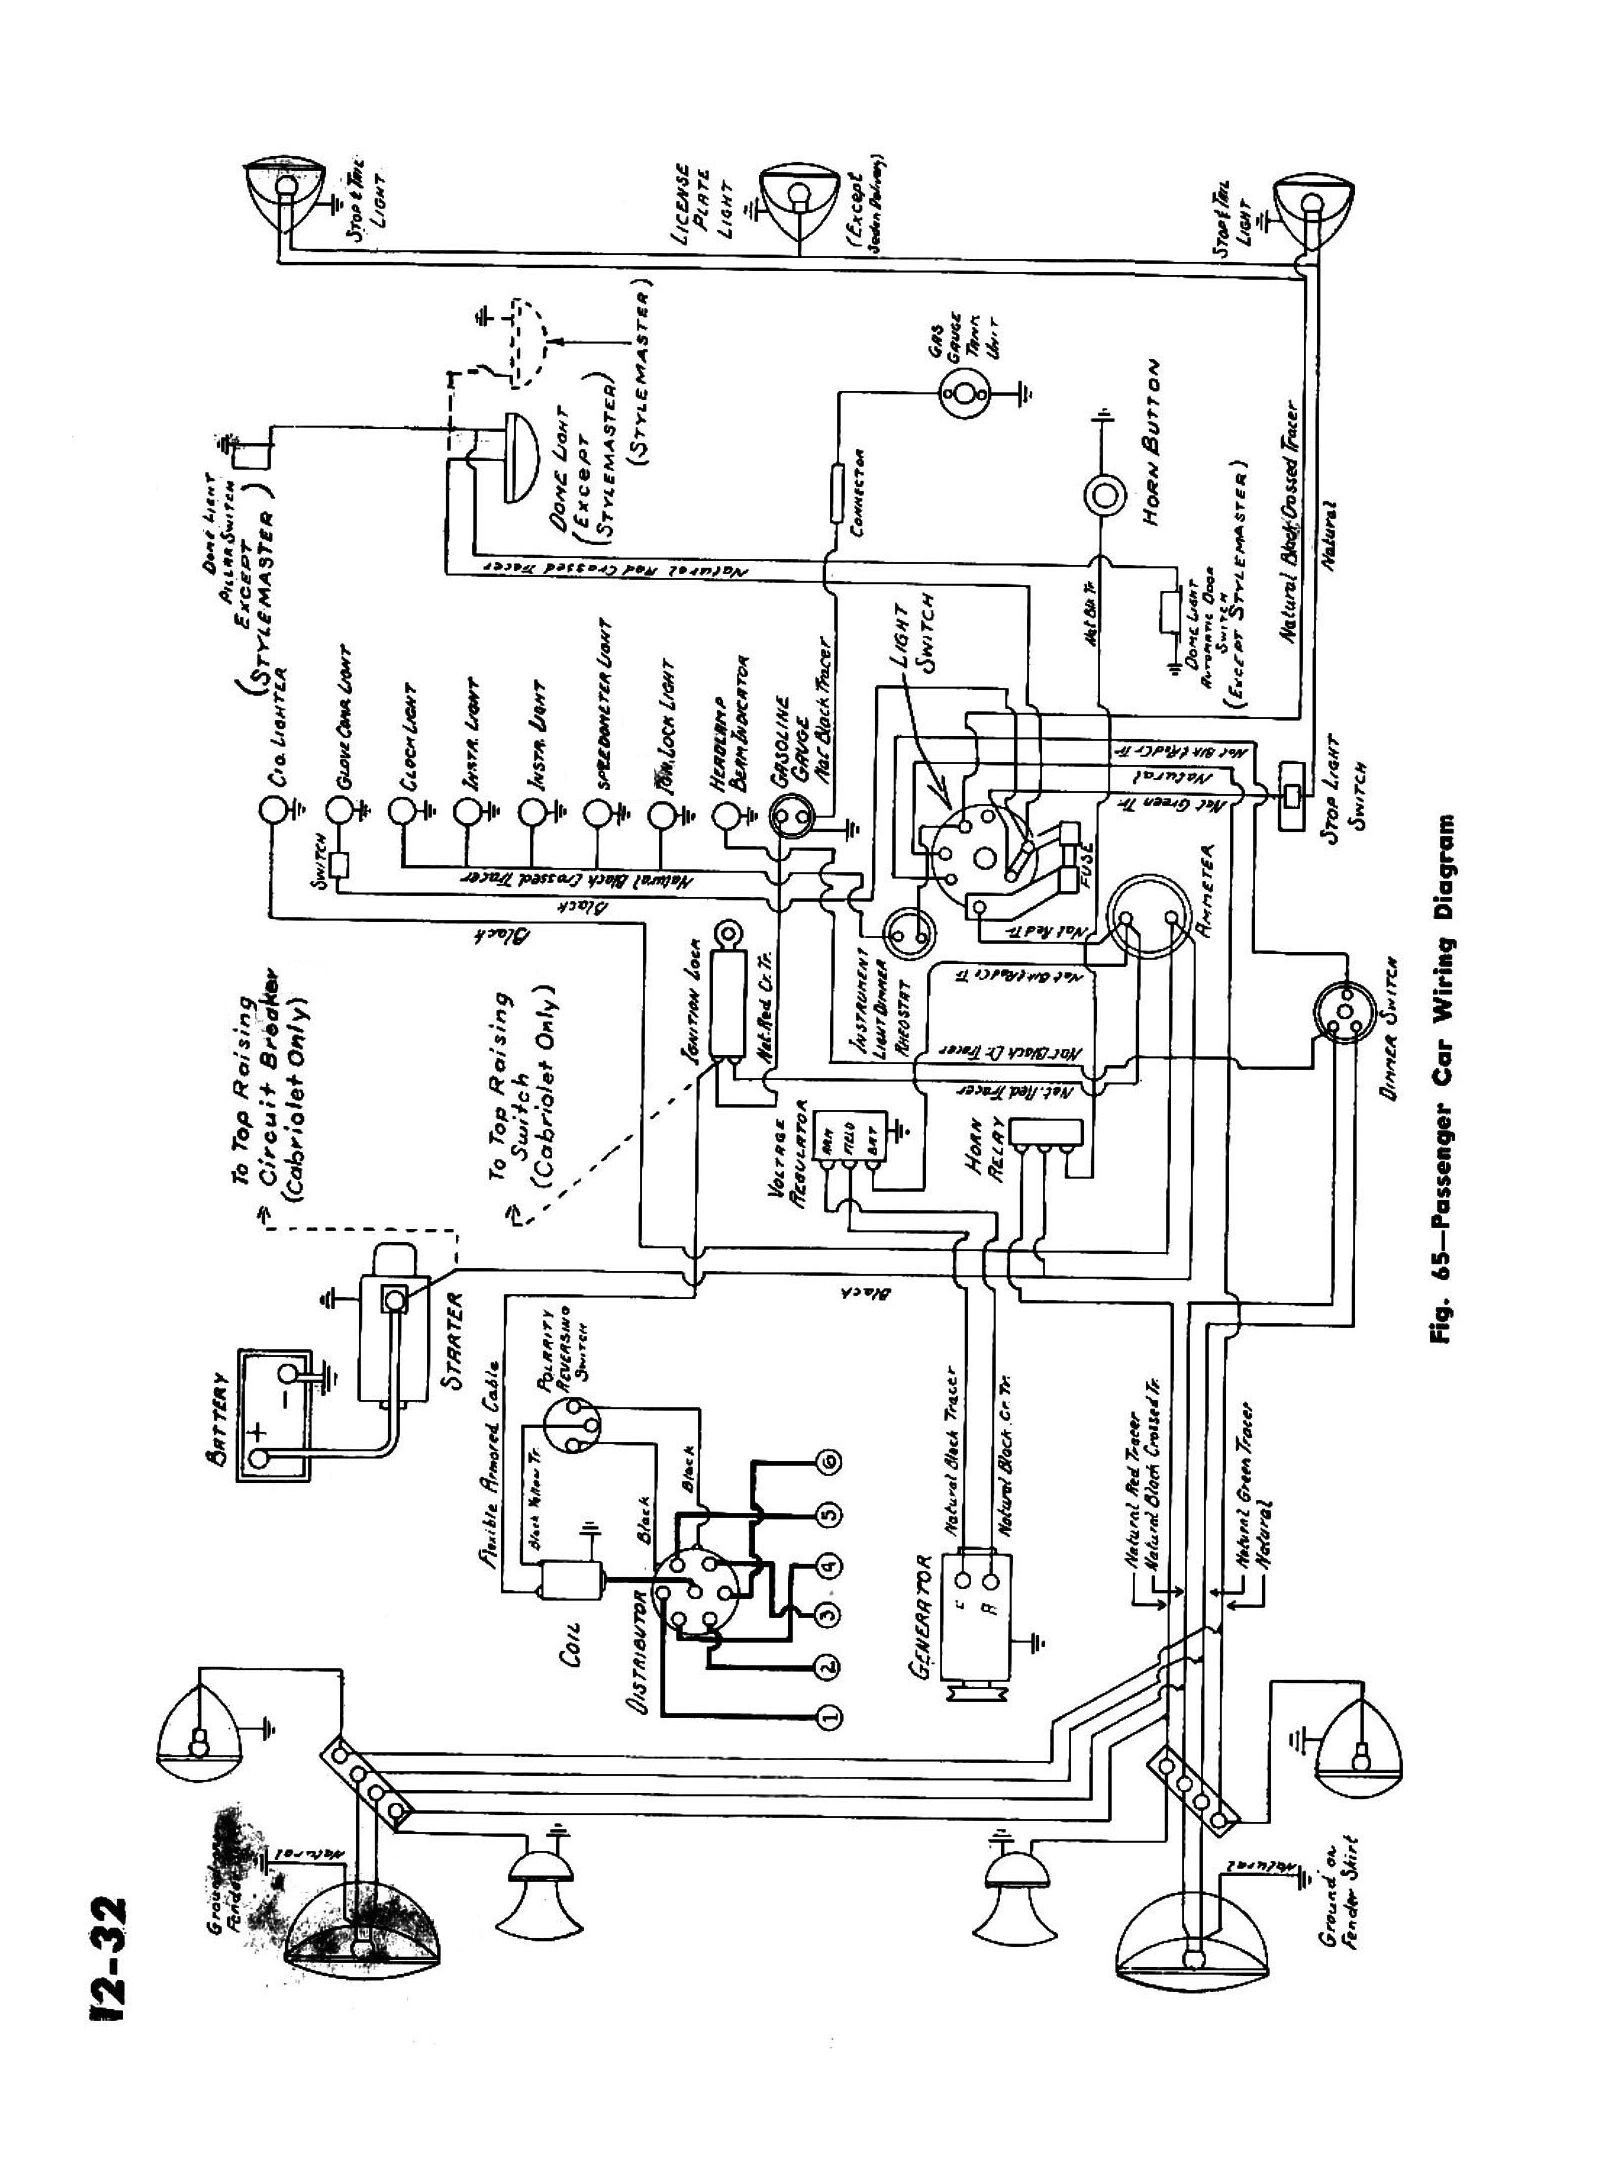 Race Car Wiring Diagram Chevy Wiring Diagrams Of Race Car Wiring Diagram